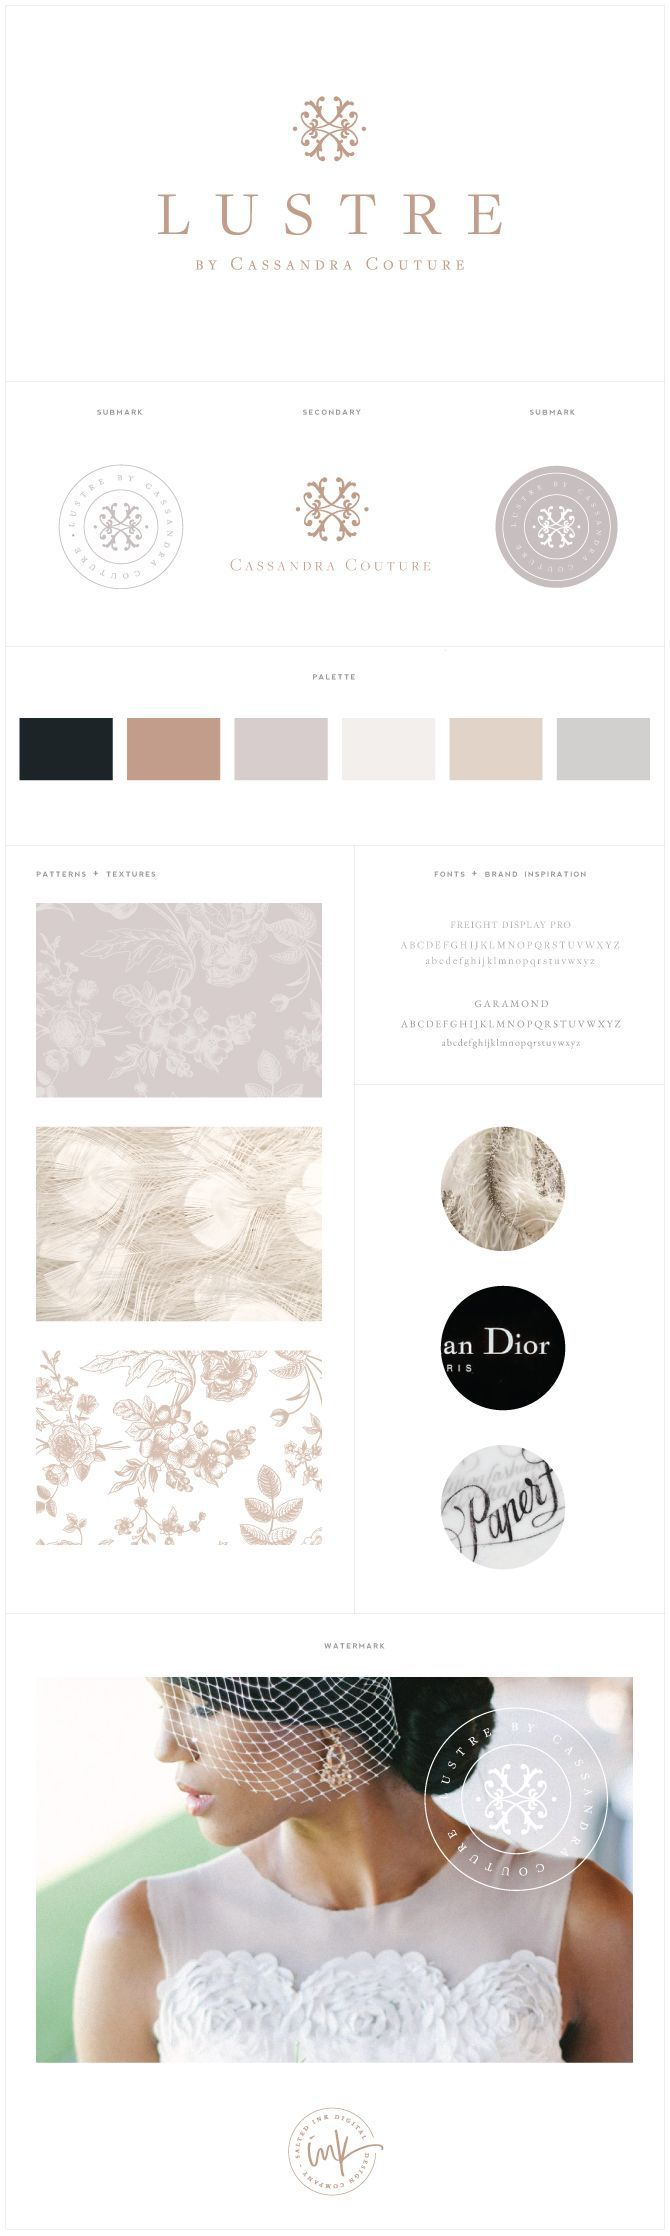 Courtney: Don't mind the color palette. I am pinning this for the patterns. These are really pretty and sophisticated patterns. Not sure if we will use patterns in the website, but these are very pretty.